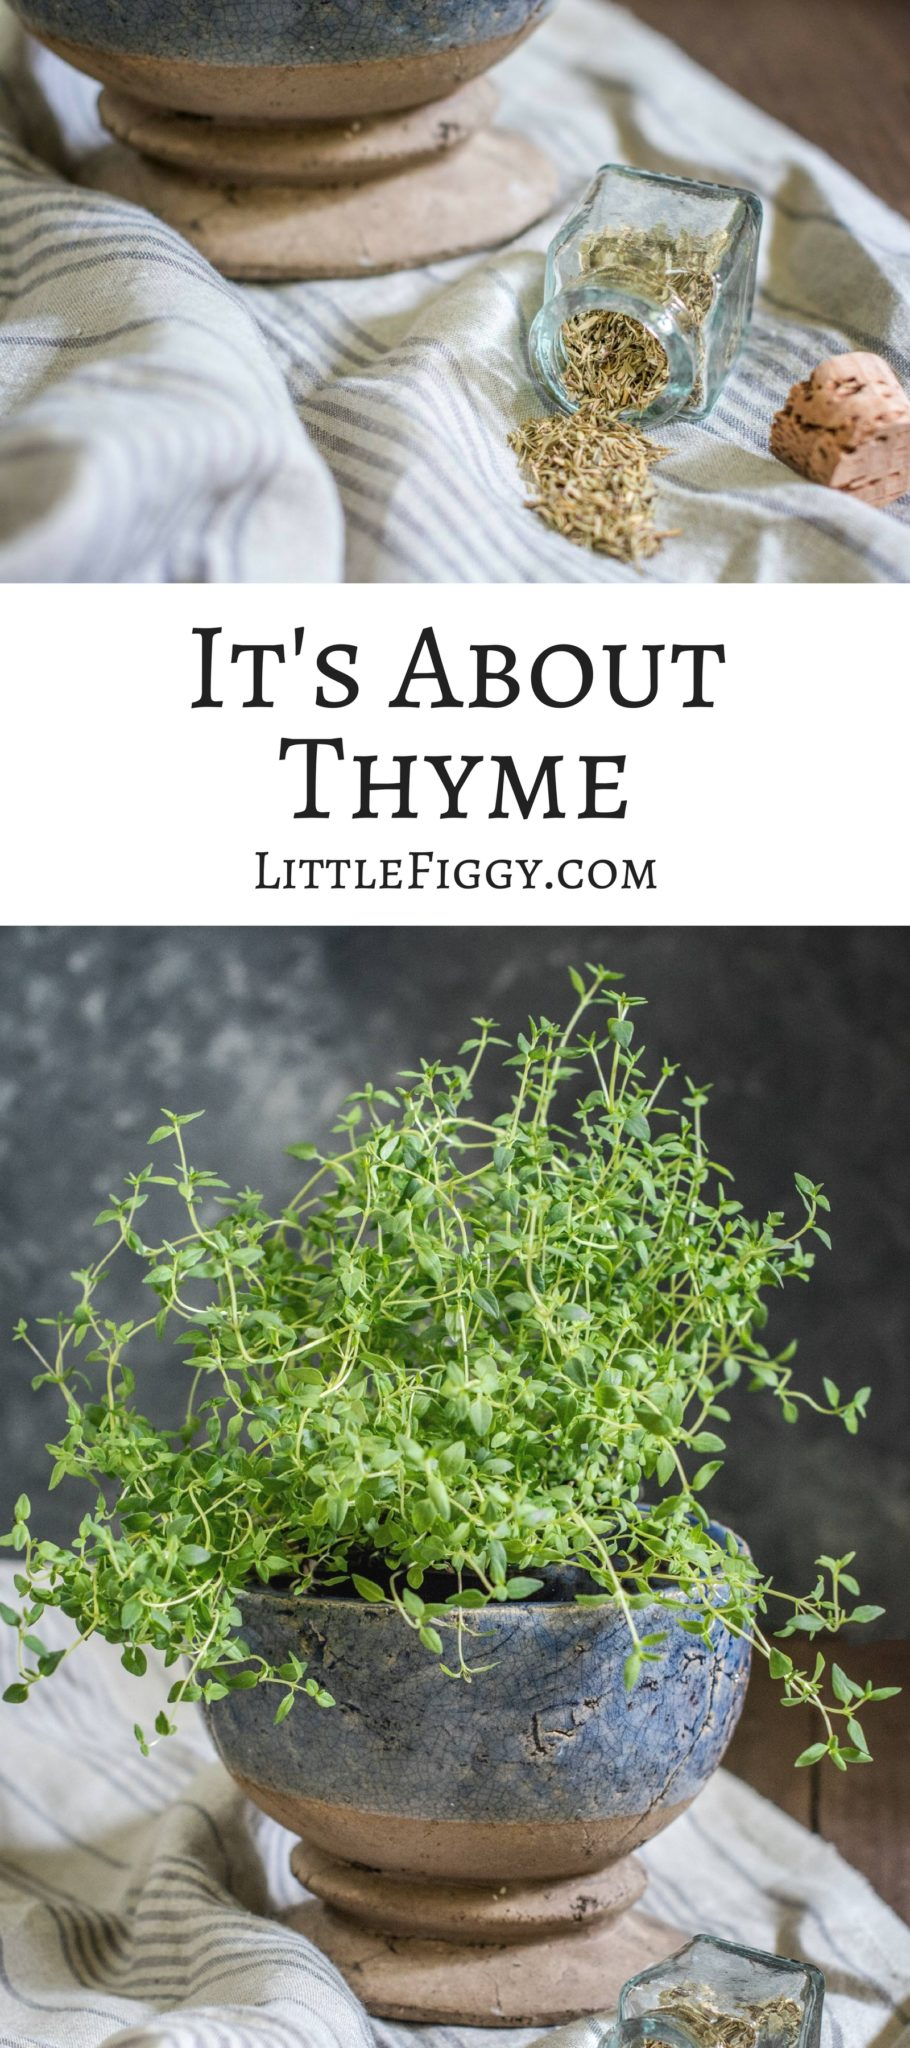 It's About Thyme, tips and ideas on how to use this delicate herb in cooking and medicinally. Also find delicious recipes and more at Little Figgy Food.